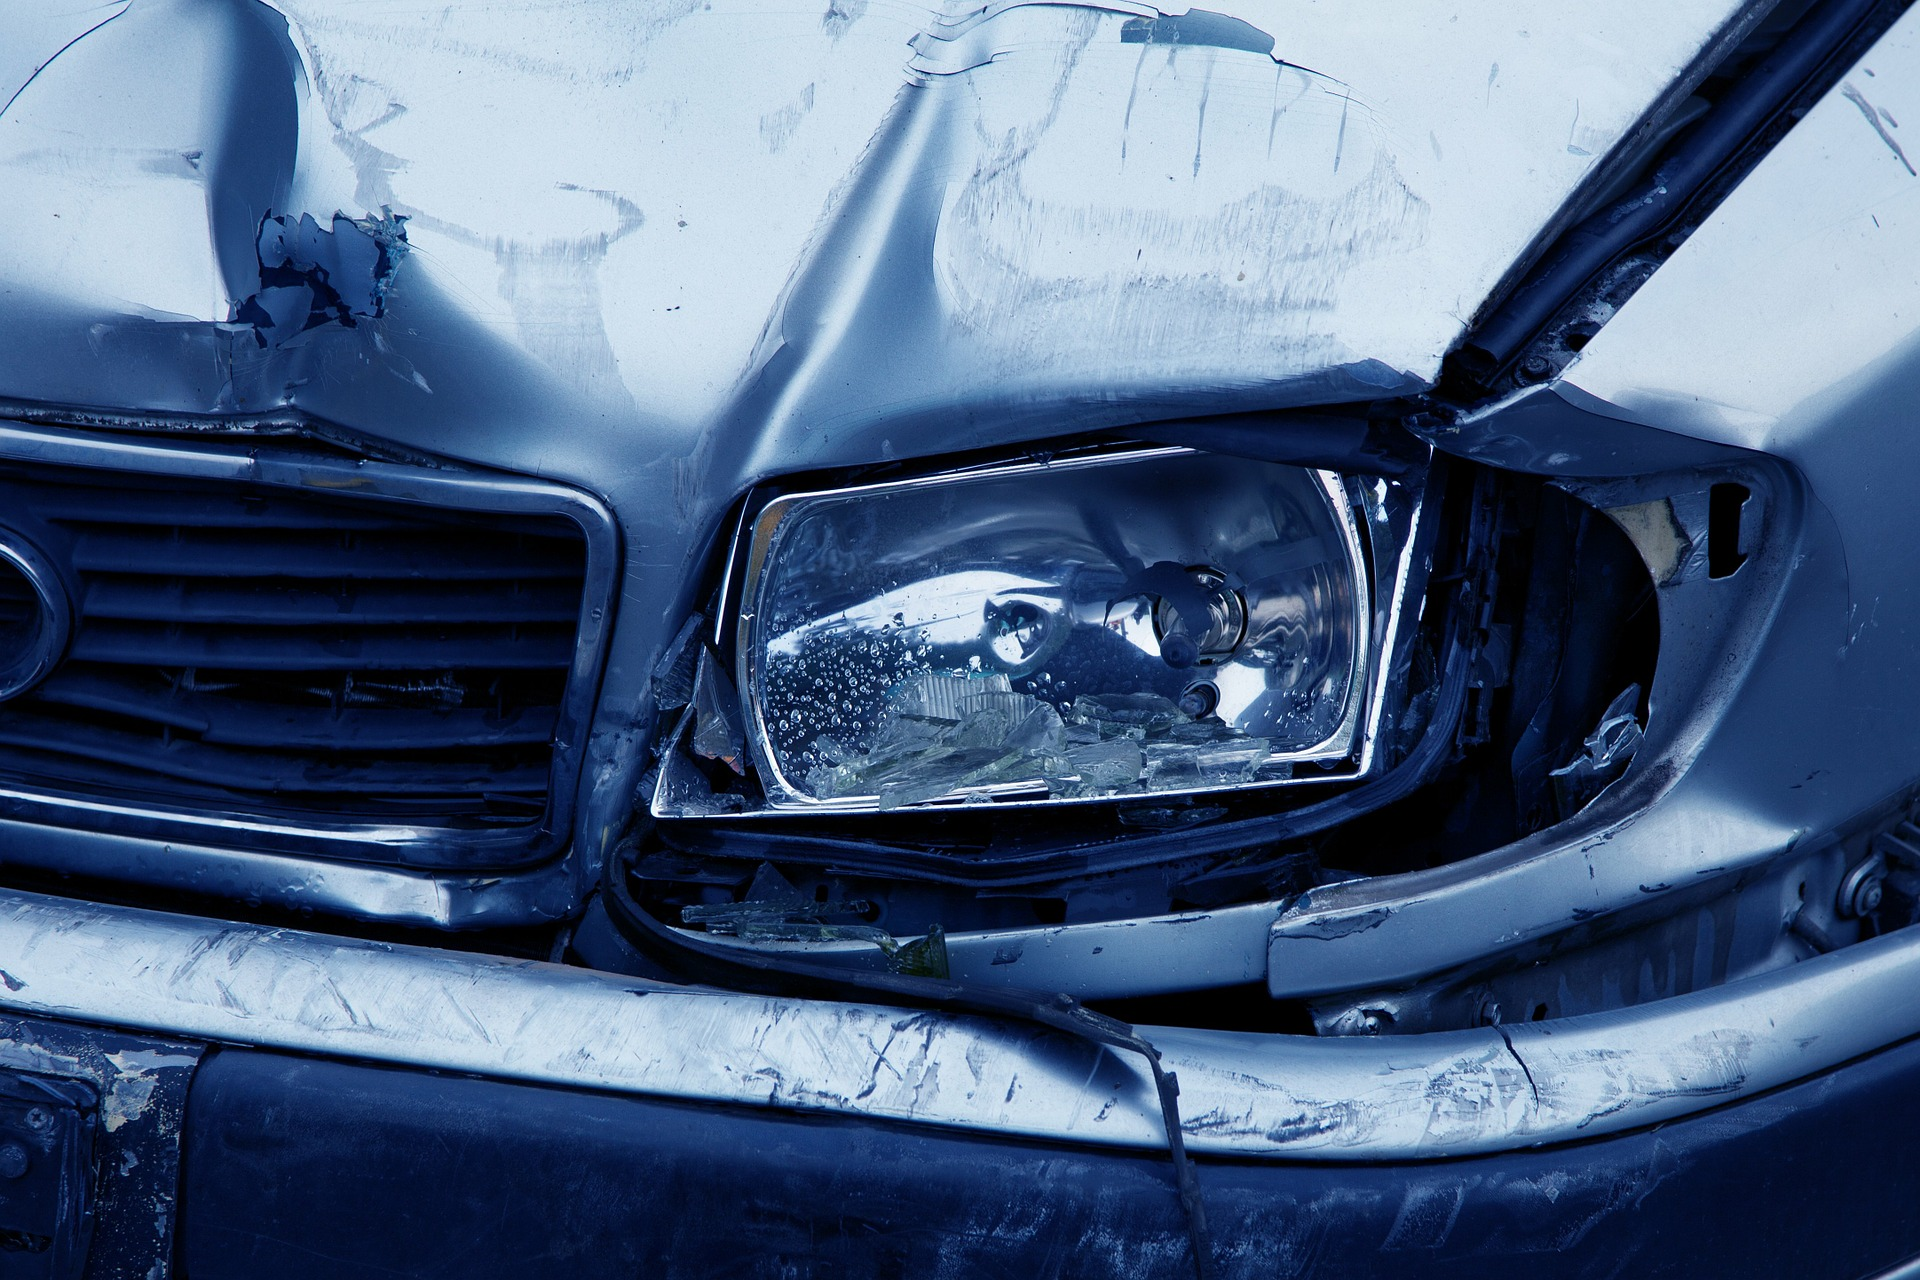 close up of car damage after auto accident